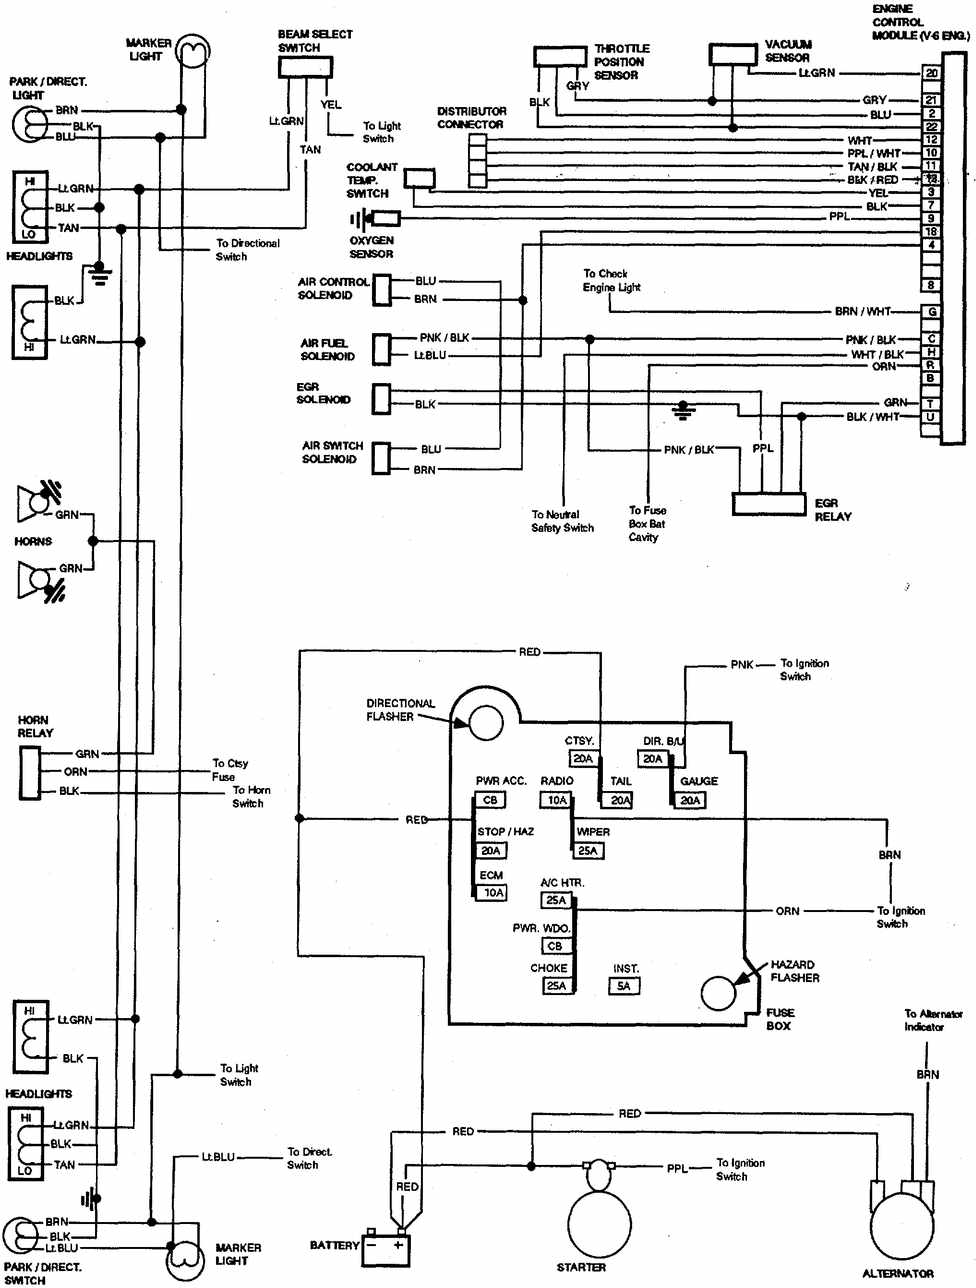 rover 400 radio wiring diagram